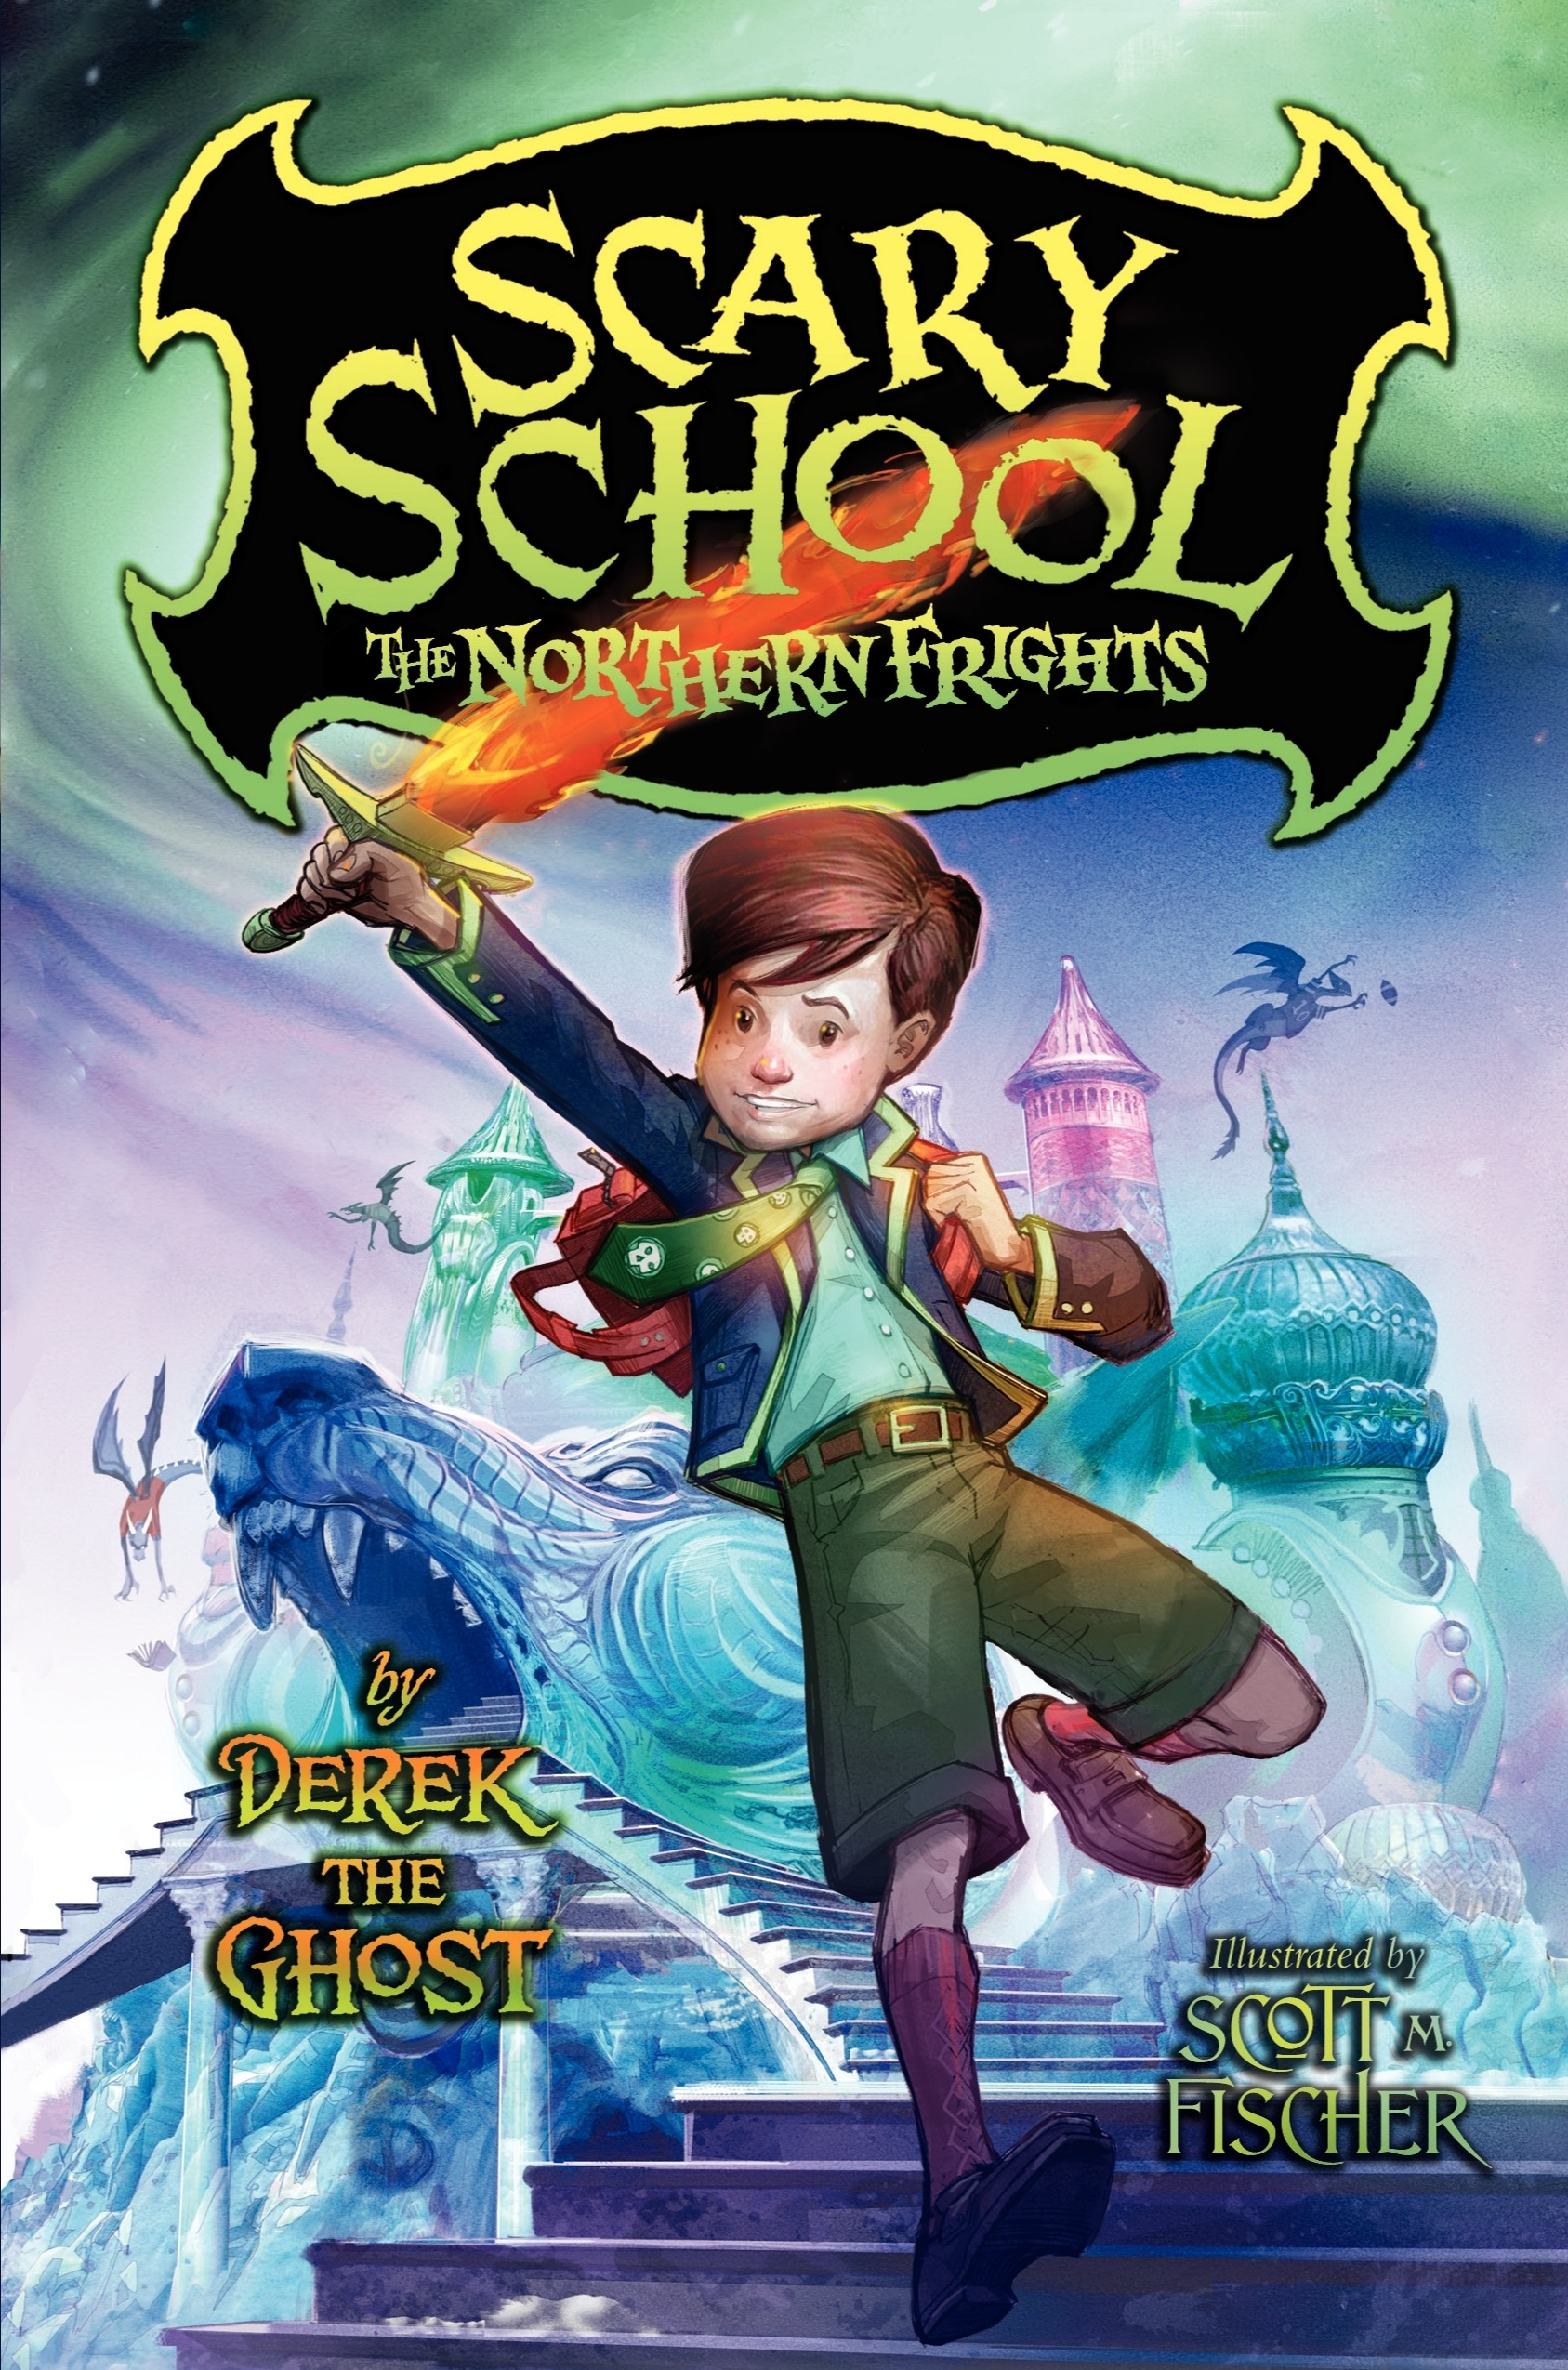 Scary School #3:The Northern Frights - Purchase on AmazonPurchase at Barnes and Noble